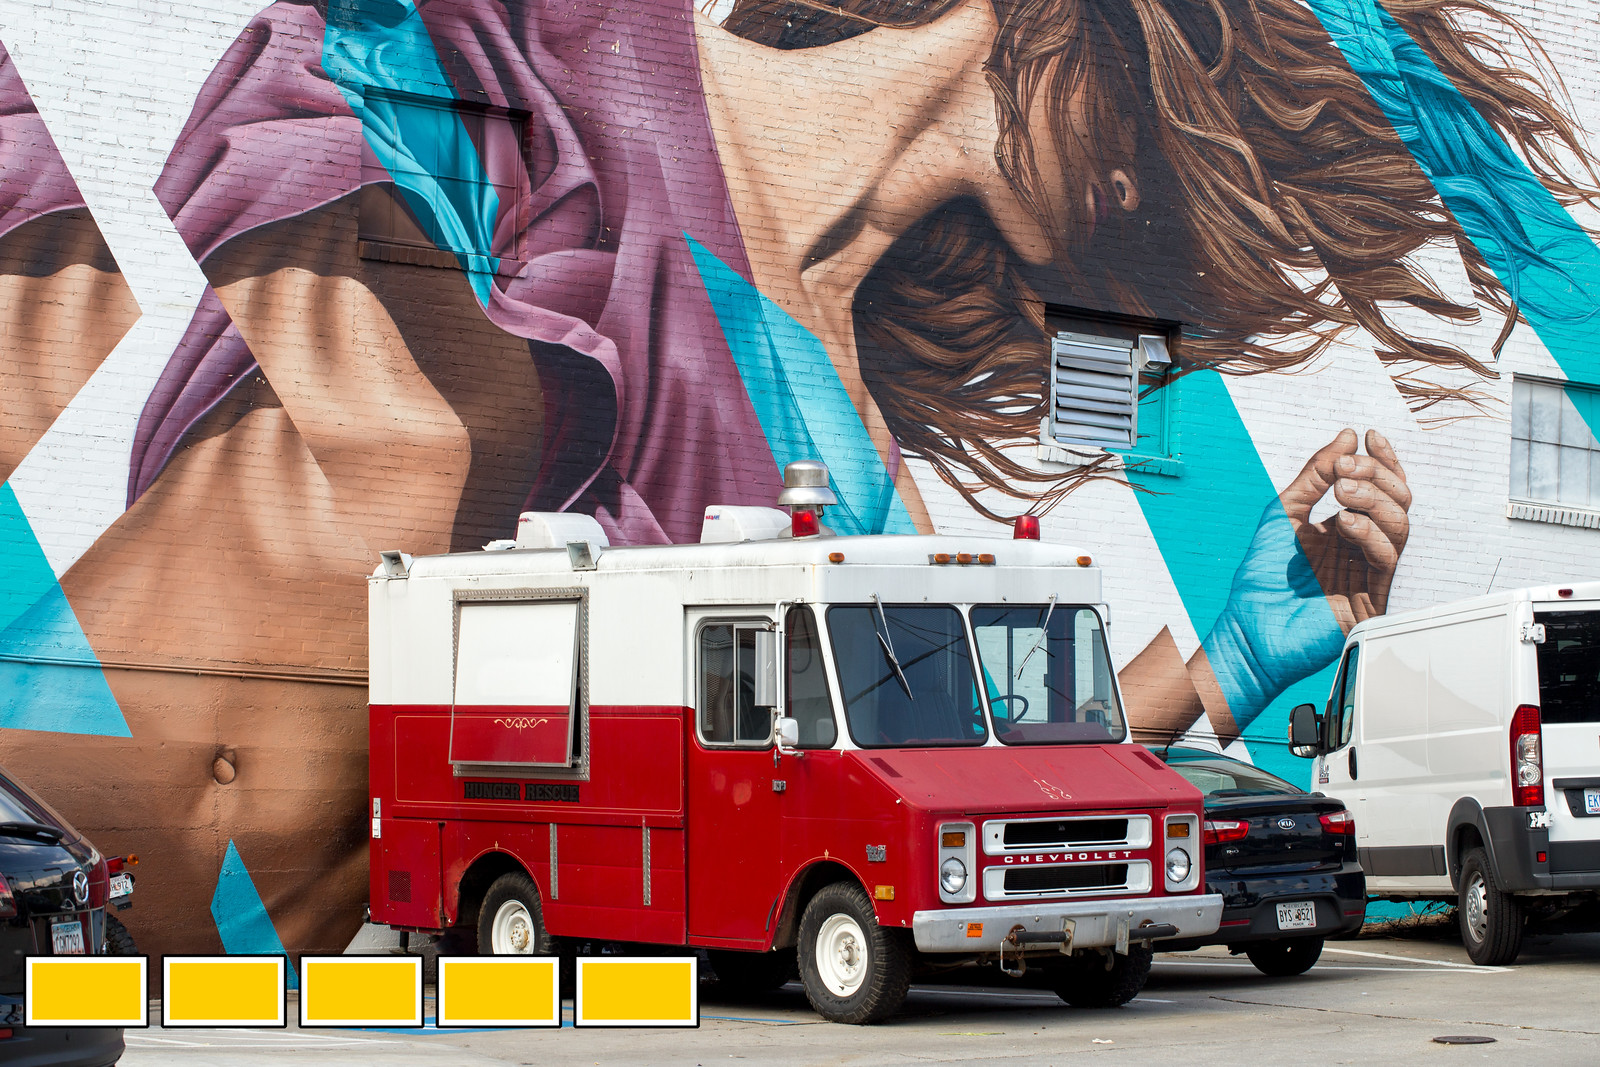 The Eastside Beltline is continuing to evolve, including here at Ponce de Leon Ave. The Beltline has new art installations, murals and sculptures.  (Jenni Girtman / Atlanta Event Photography)